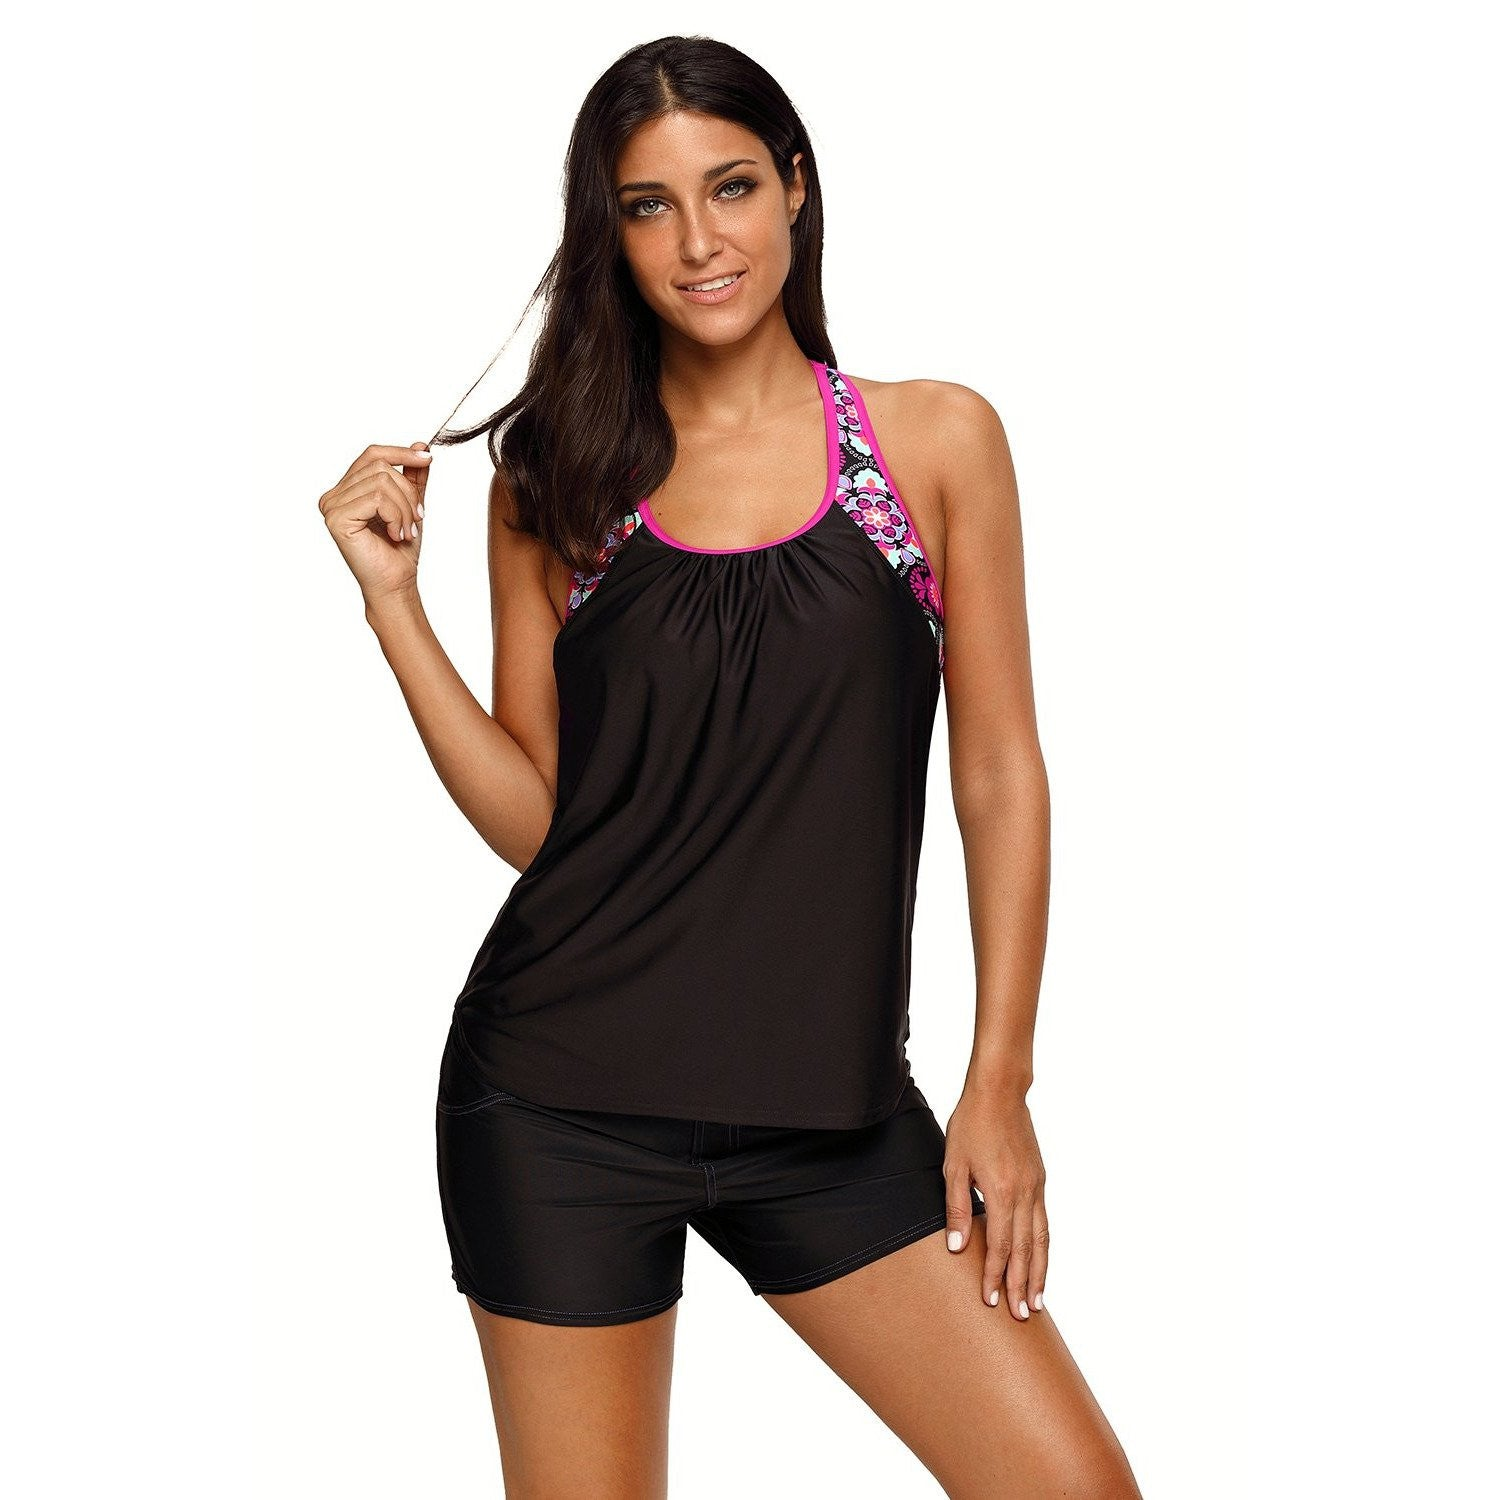 KELLIPS Black Blouson Style Summer Tankini Top - KELLIPS